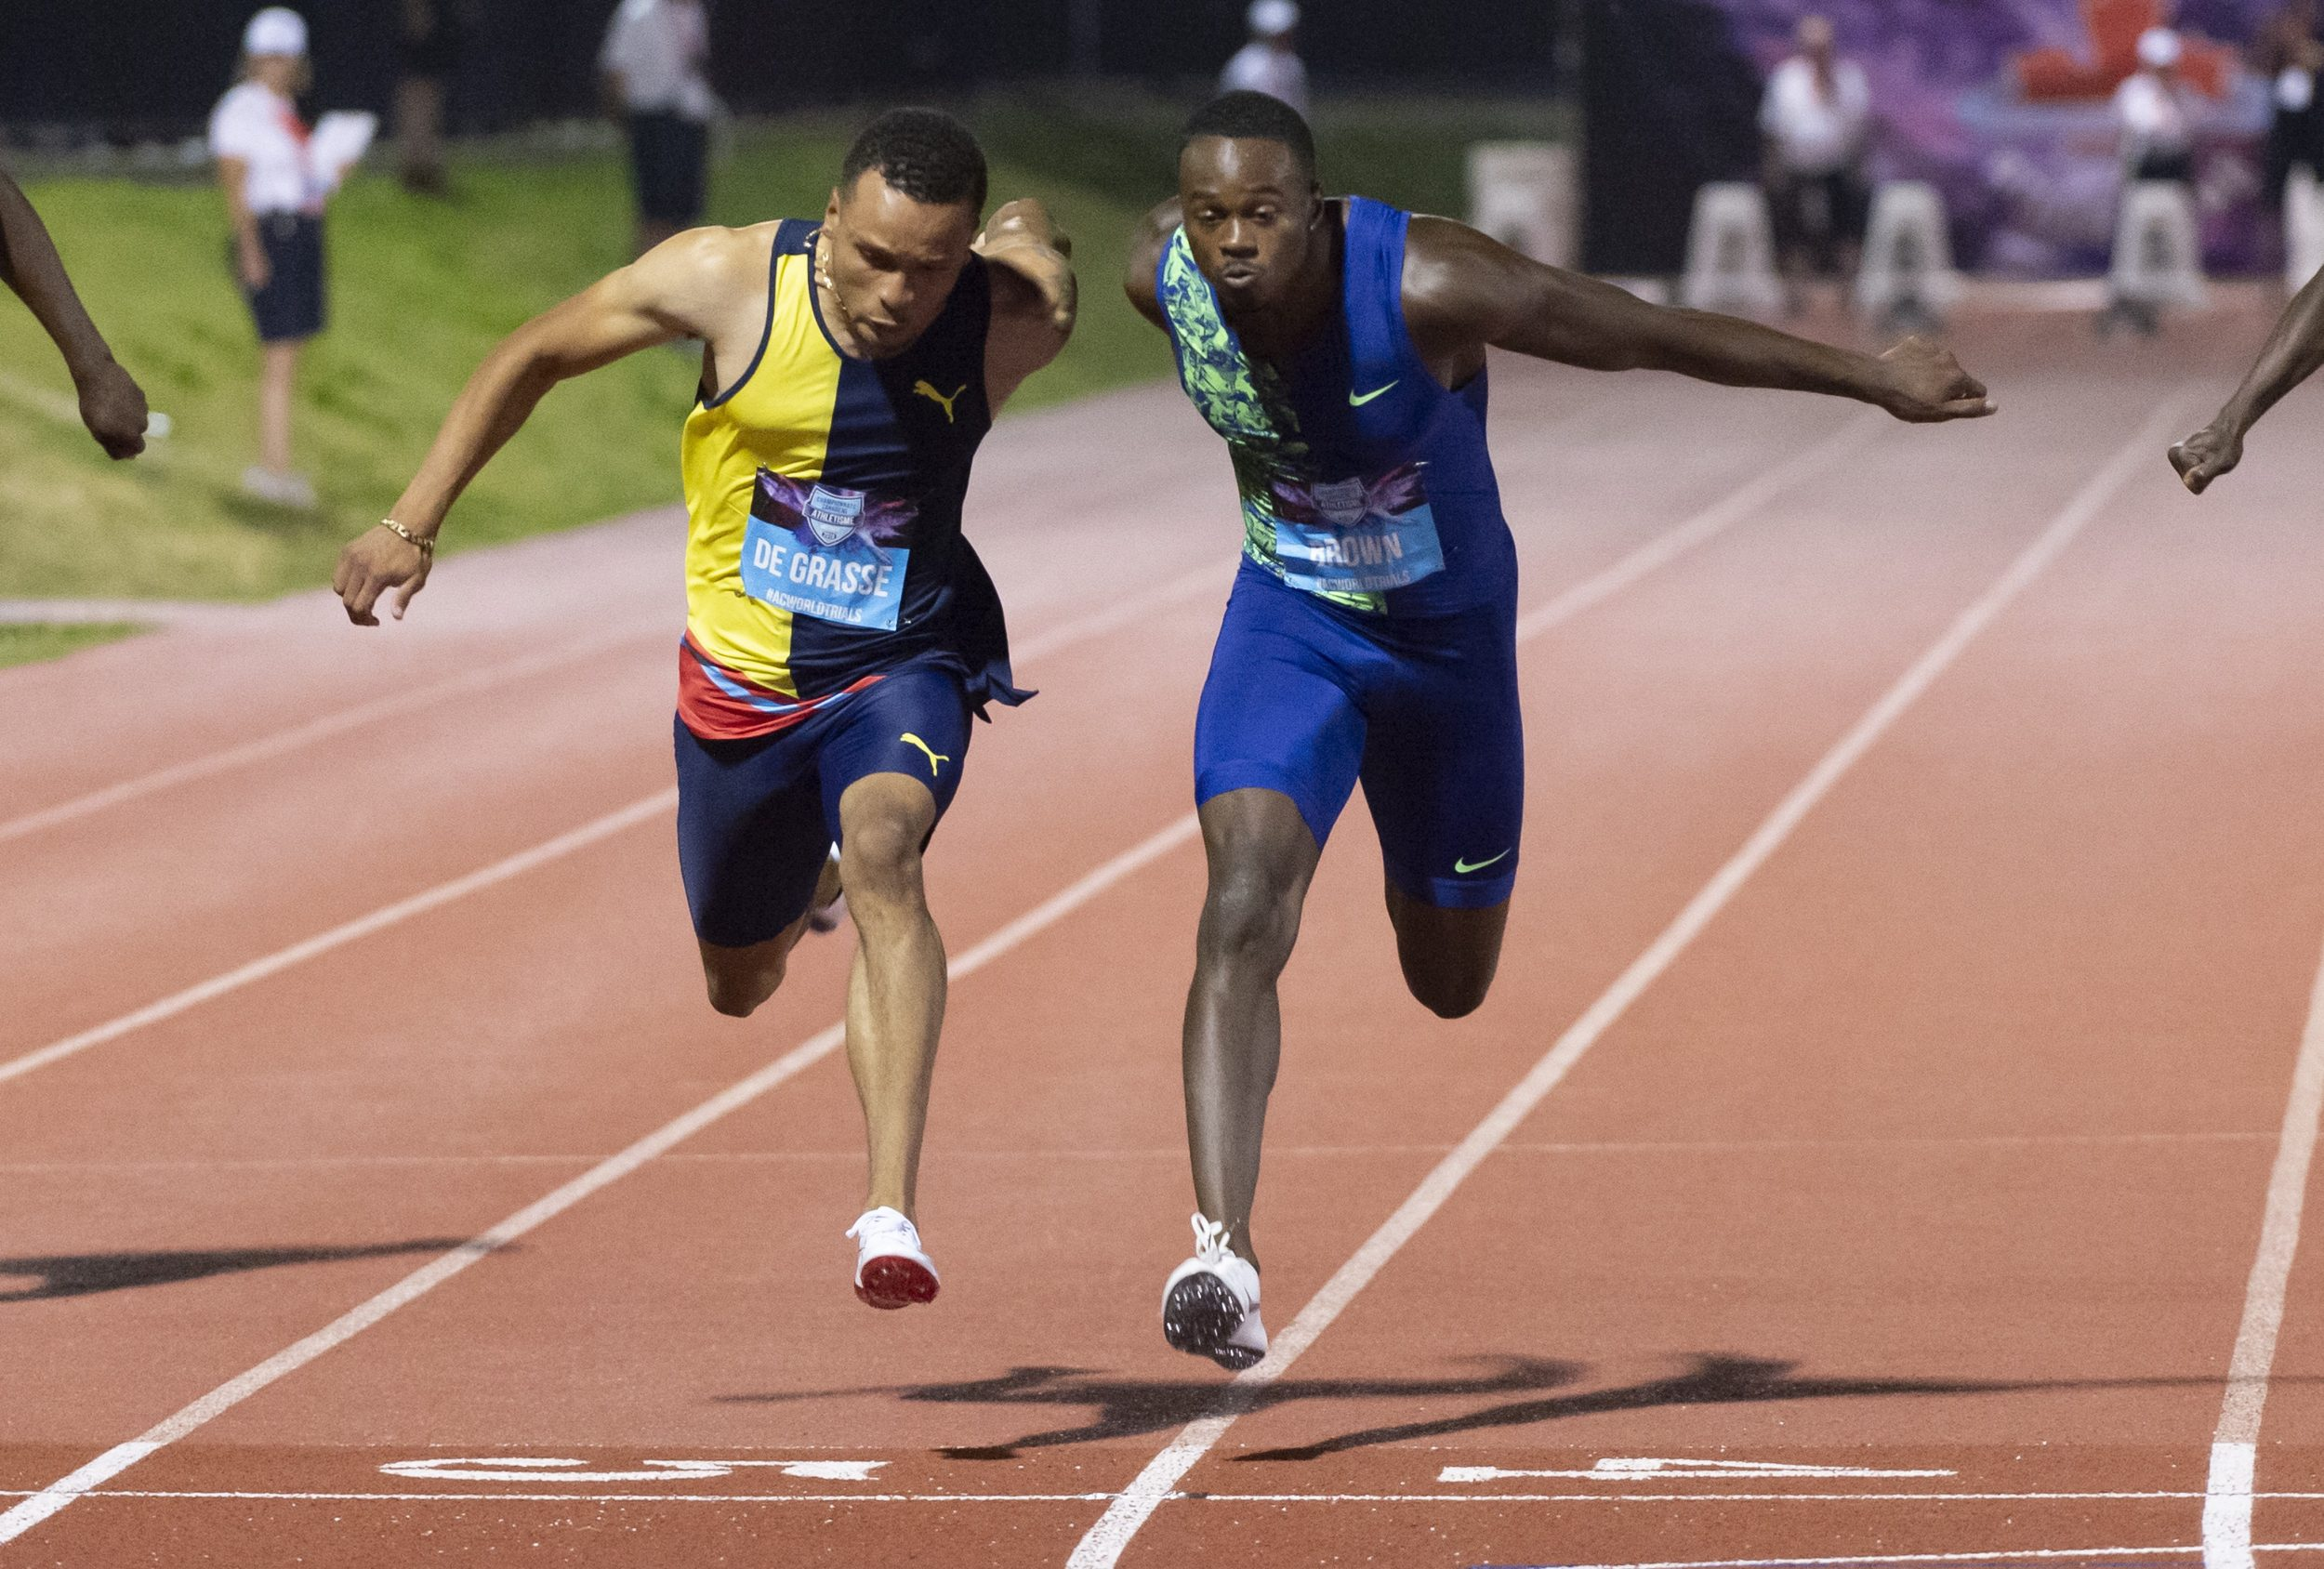 Aaron Brown edges out Andre De Grasse in a photo finish